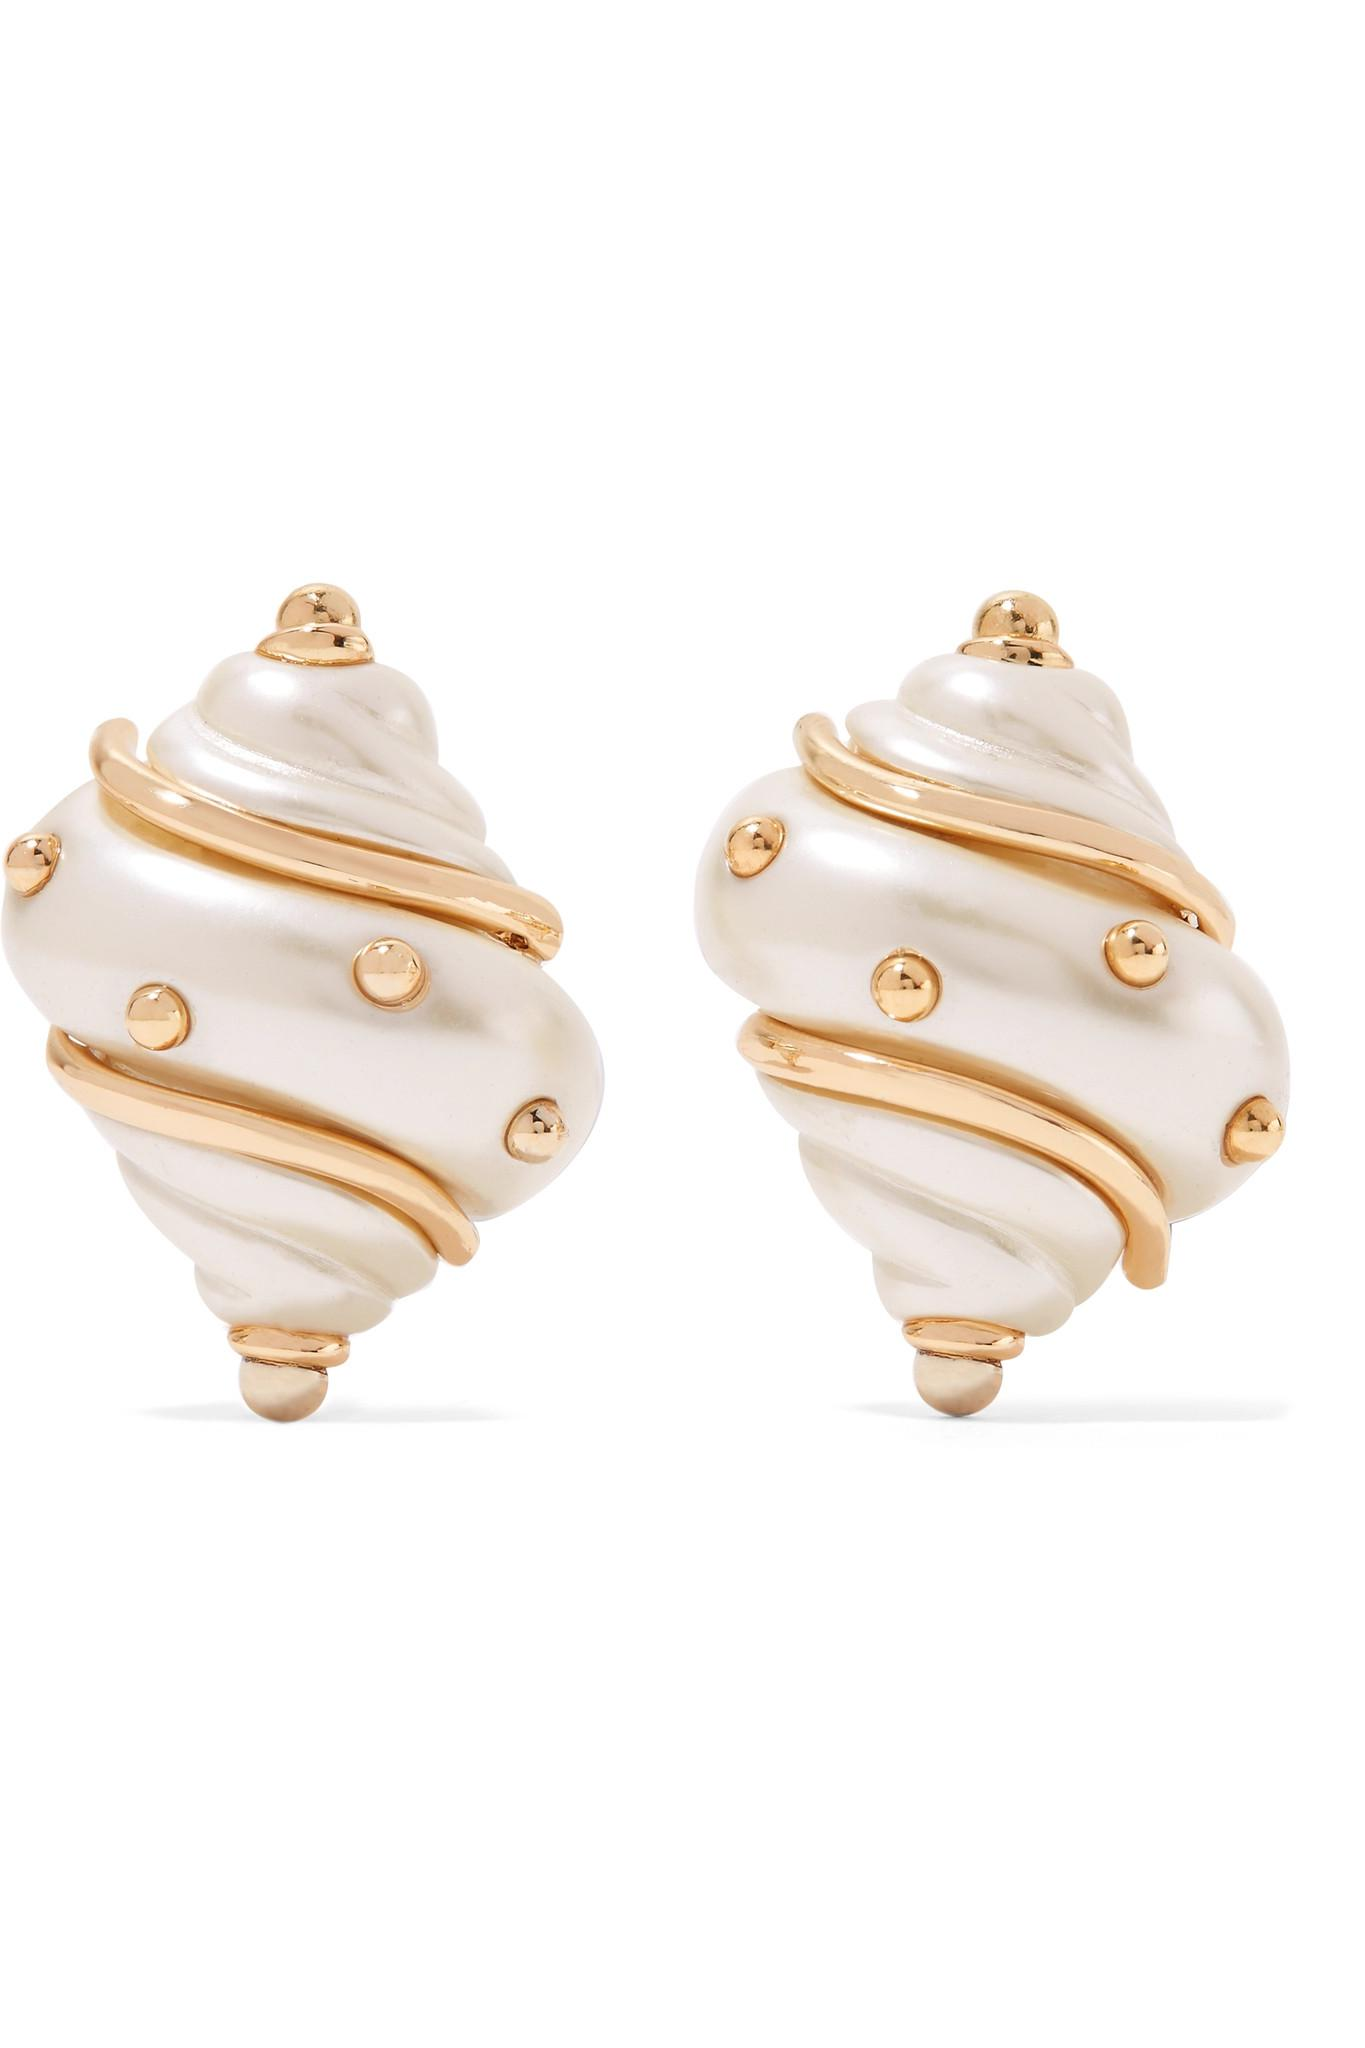 Gold-plated Faux Pearl Earrings - White Kenneth Jay Lane QPLTz02d